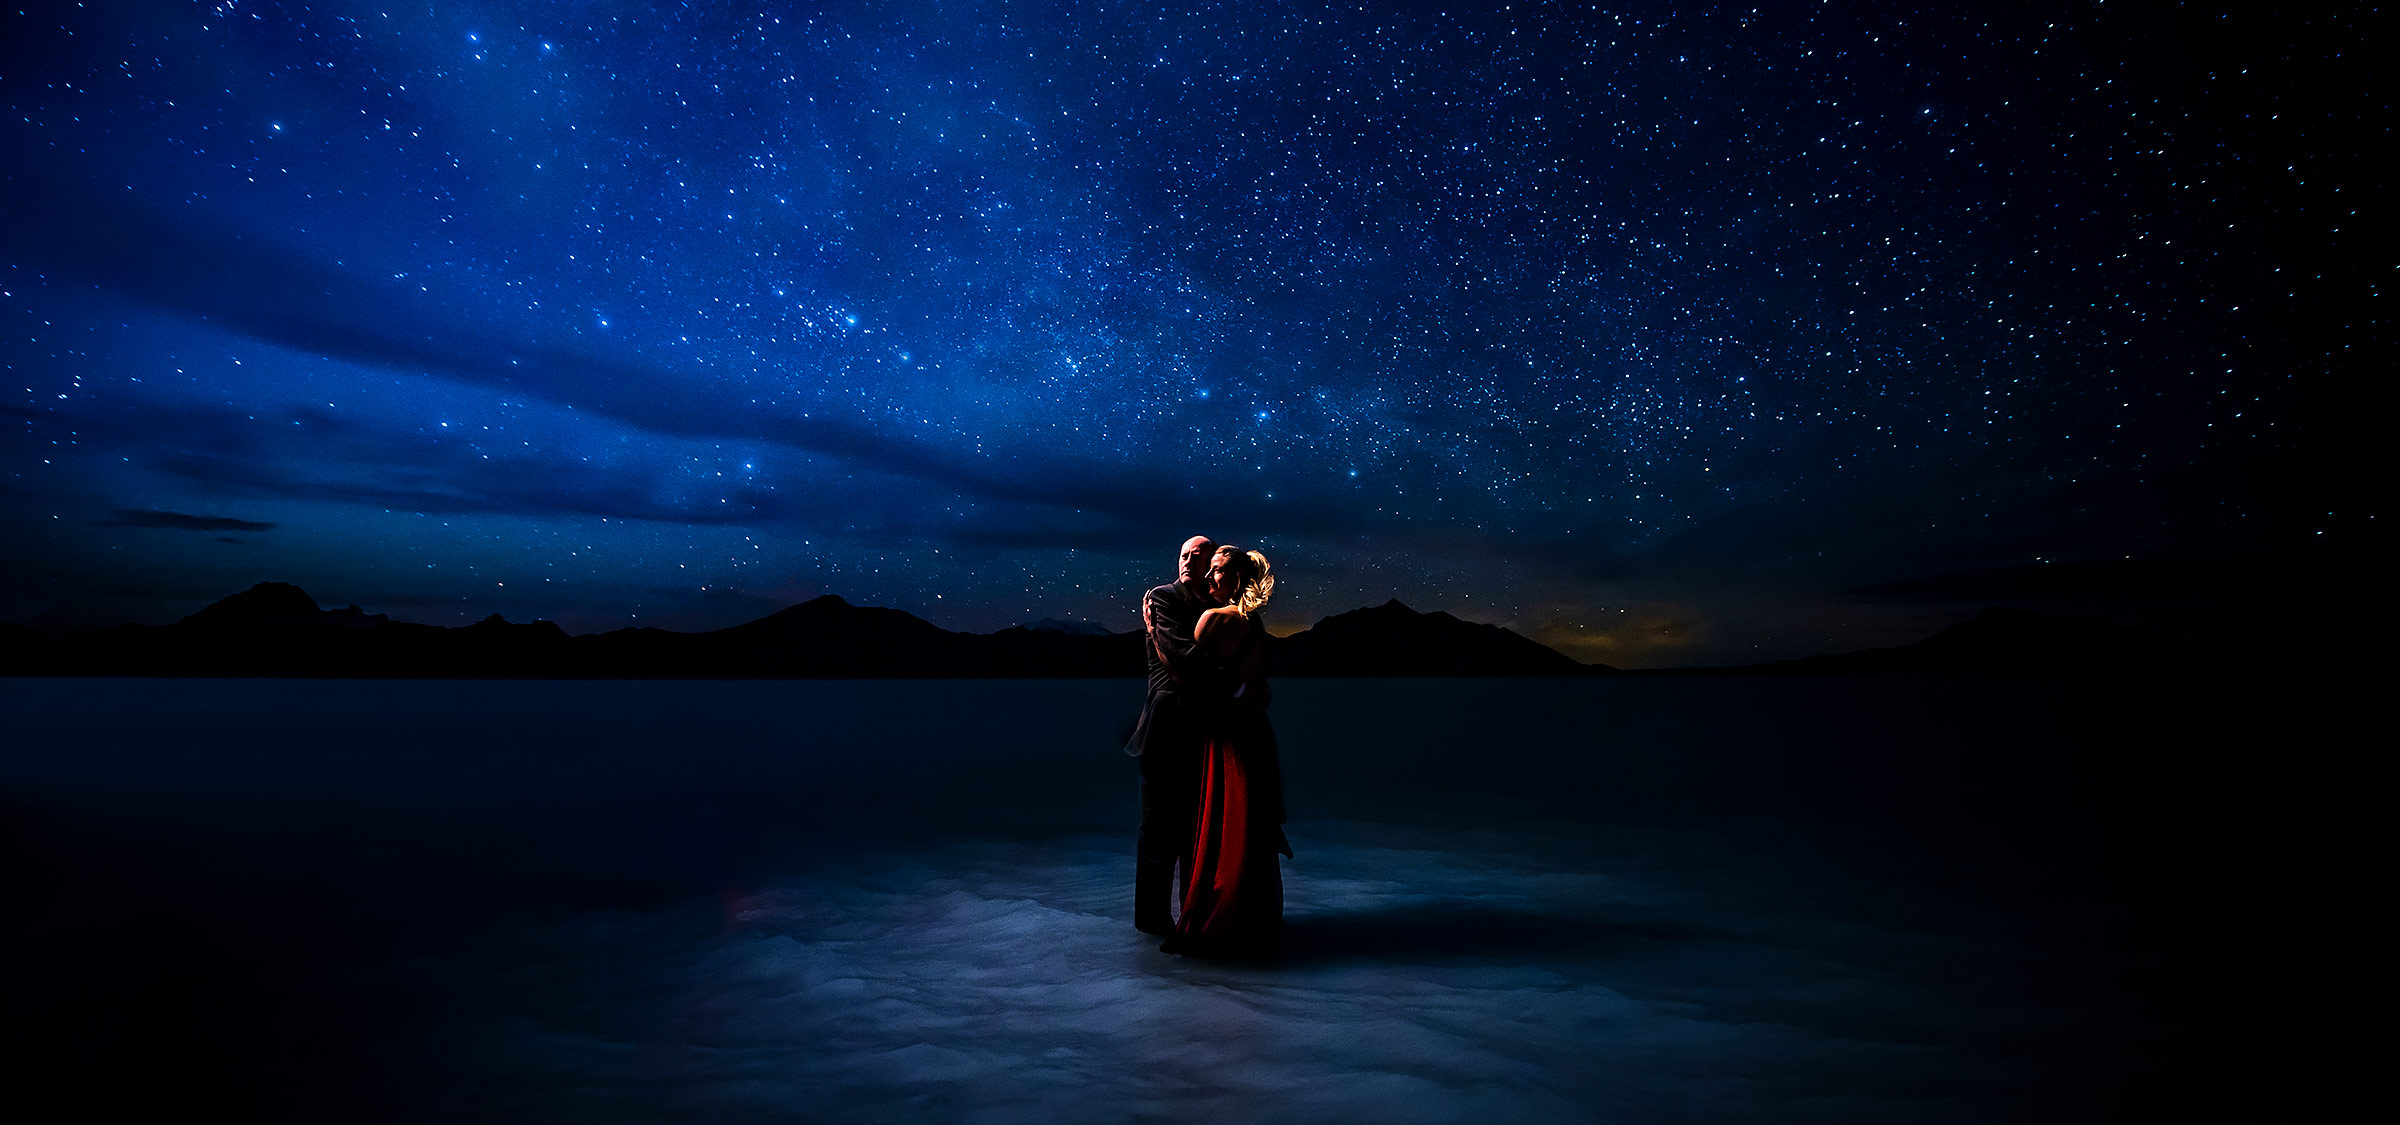 Bride and Groom Under the Stars | Bonneville Salt Flats Engagement | Destination Wedding Photographers | J. La Plante Photo